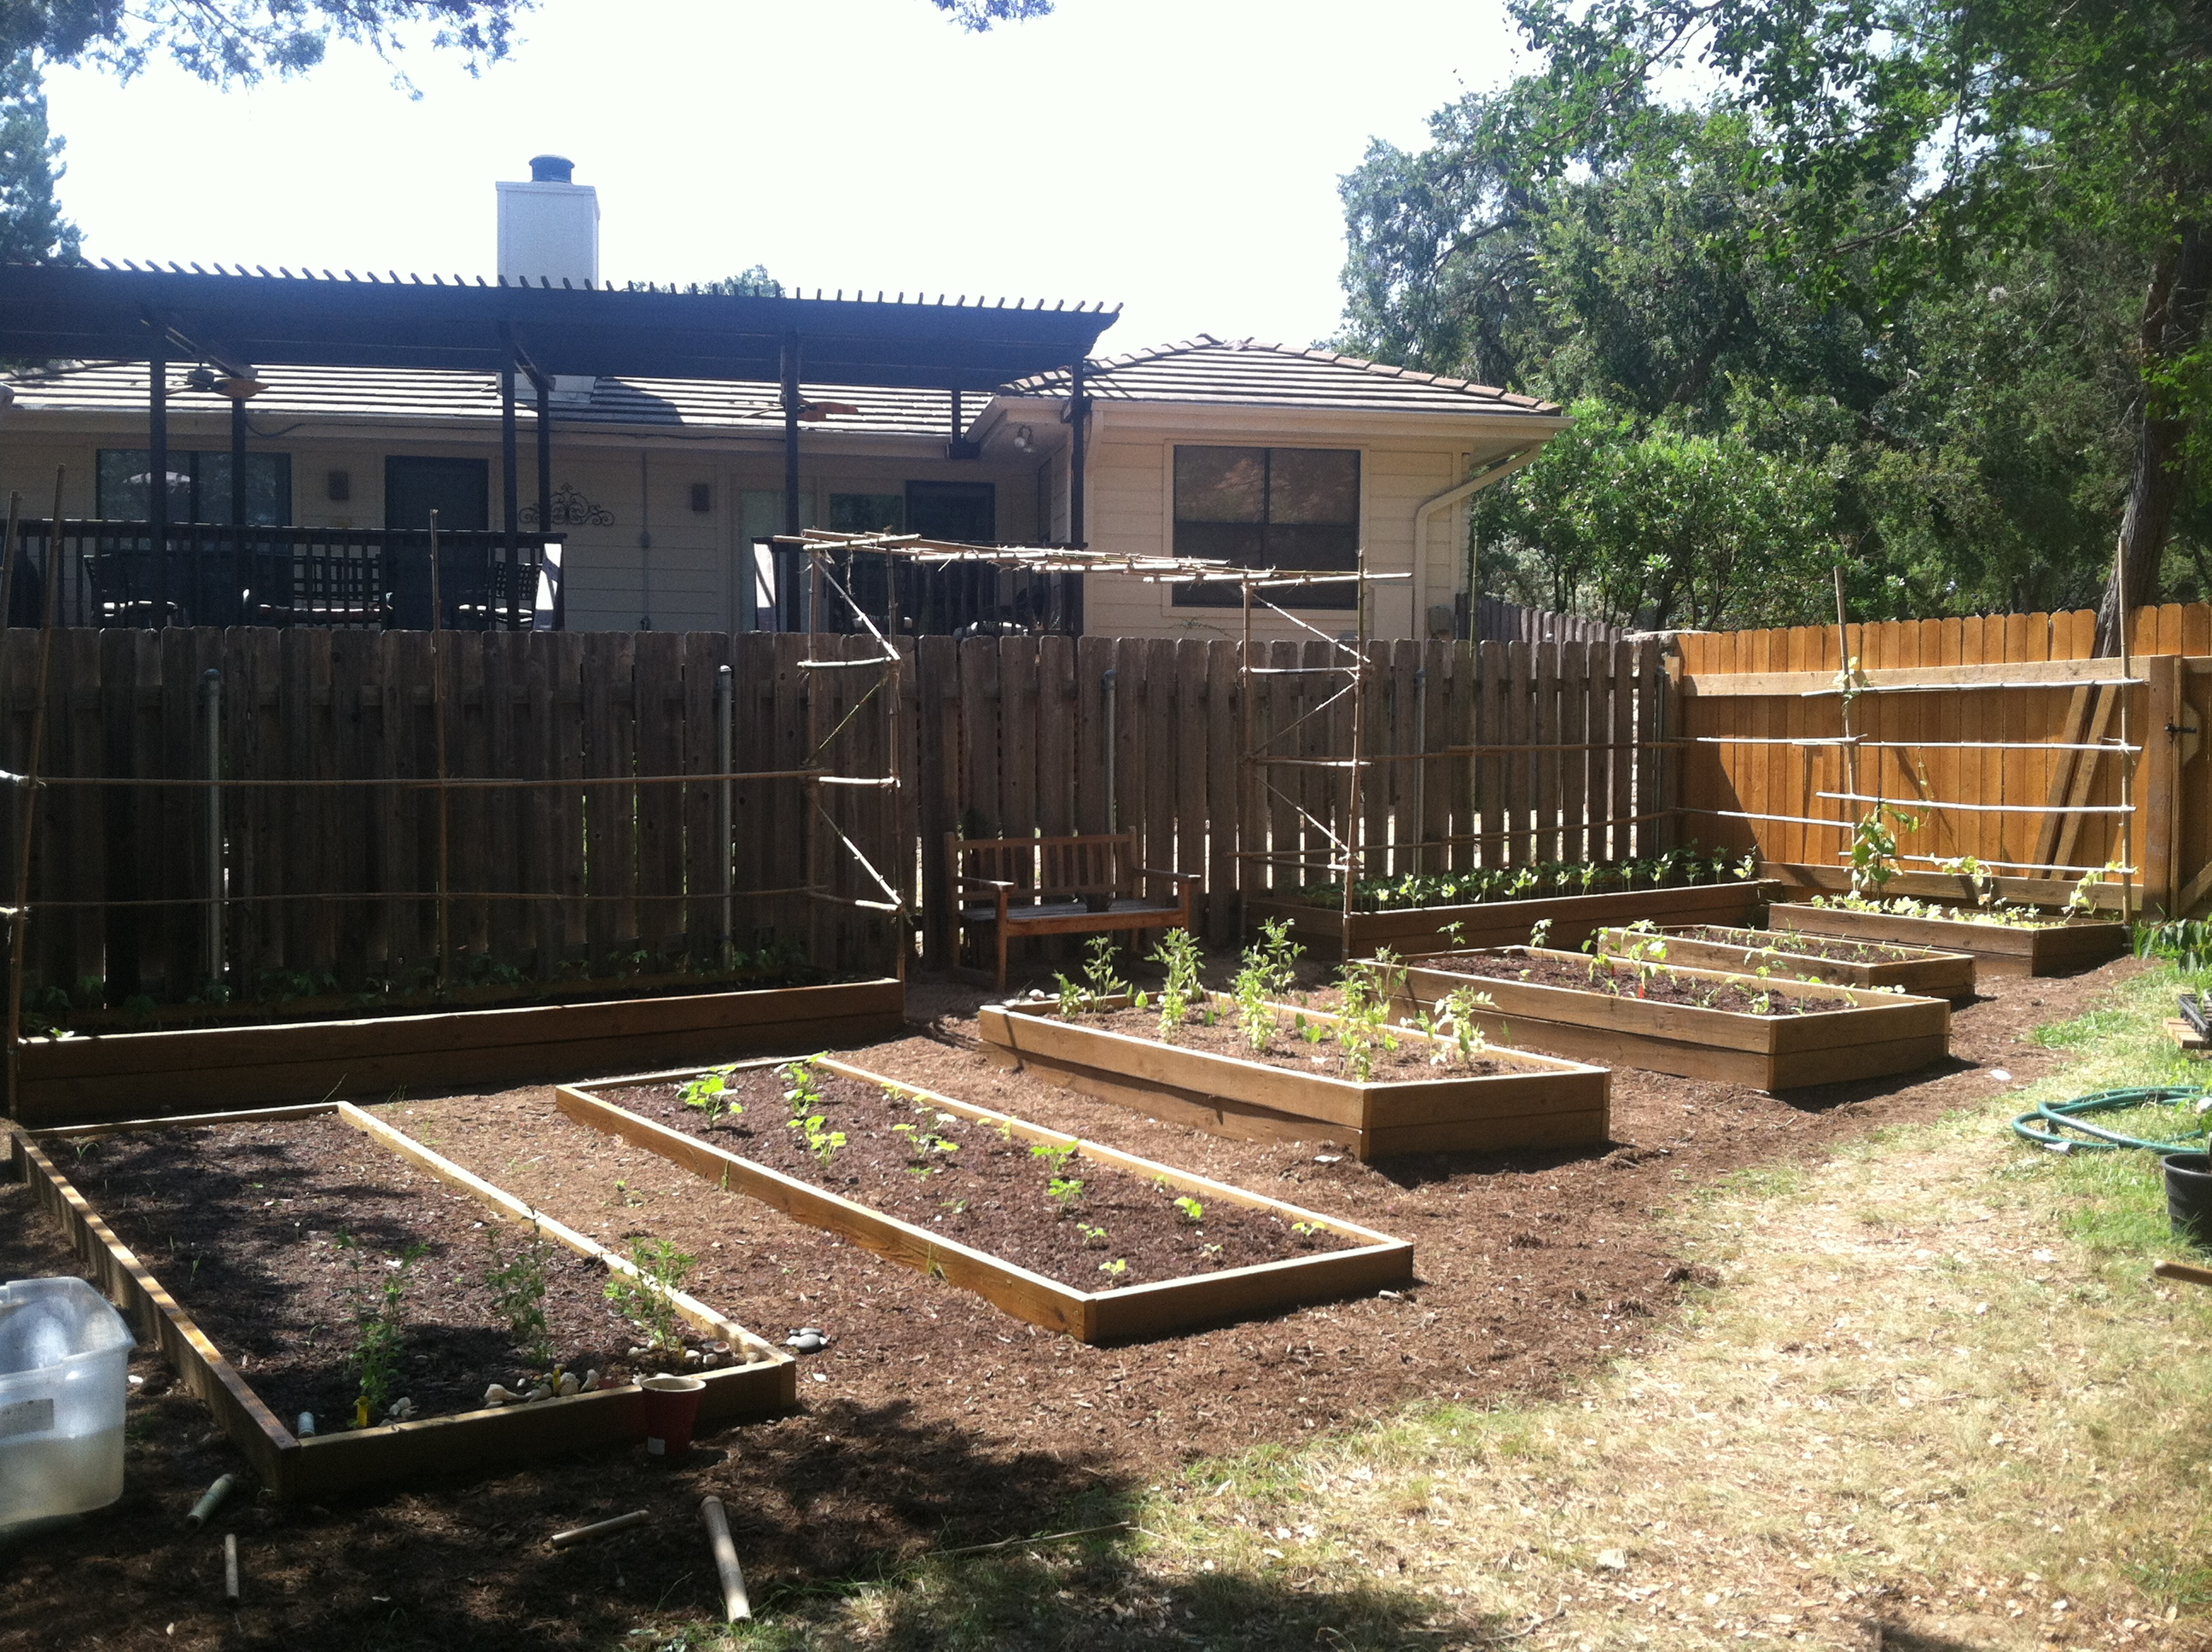 The garden beds and fence to the right were built from reclaimed lumber. The trellises were built from bamboo that needed to be cleared anyway so they were saved from the waste stream and up cycled to a useful purpose.